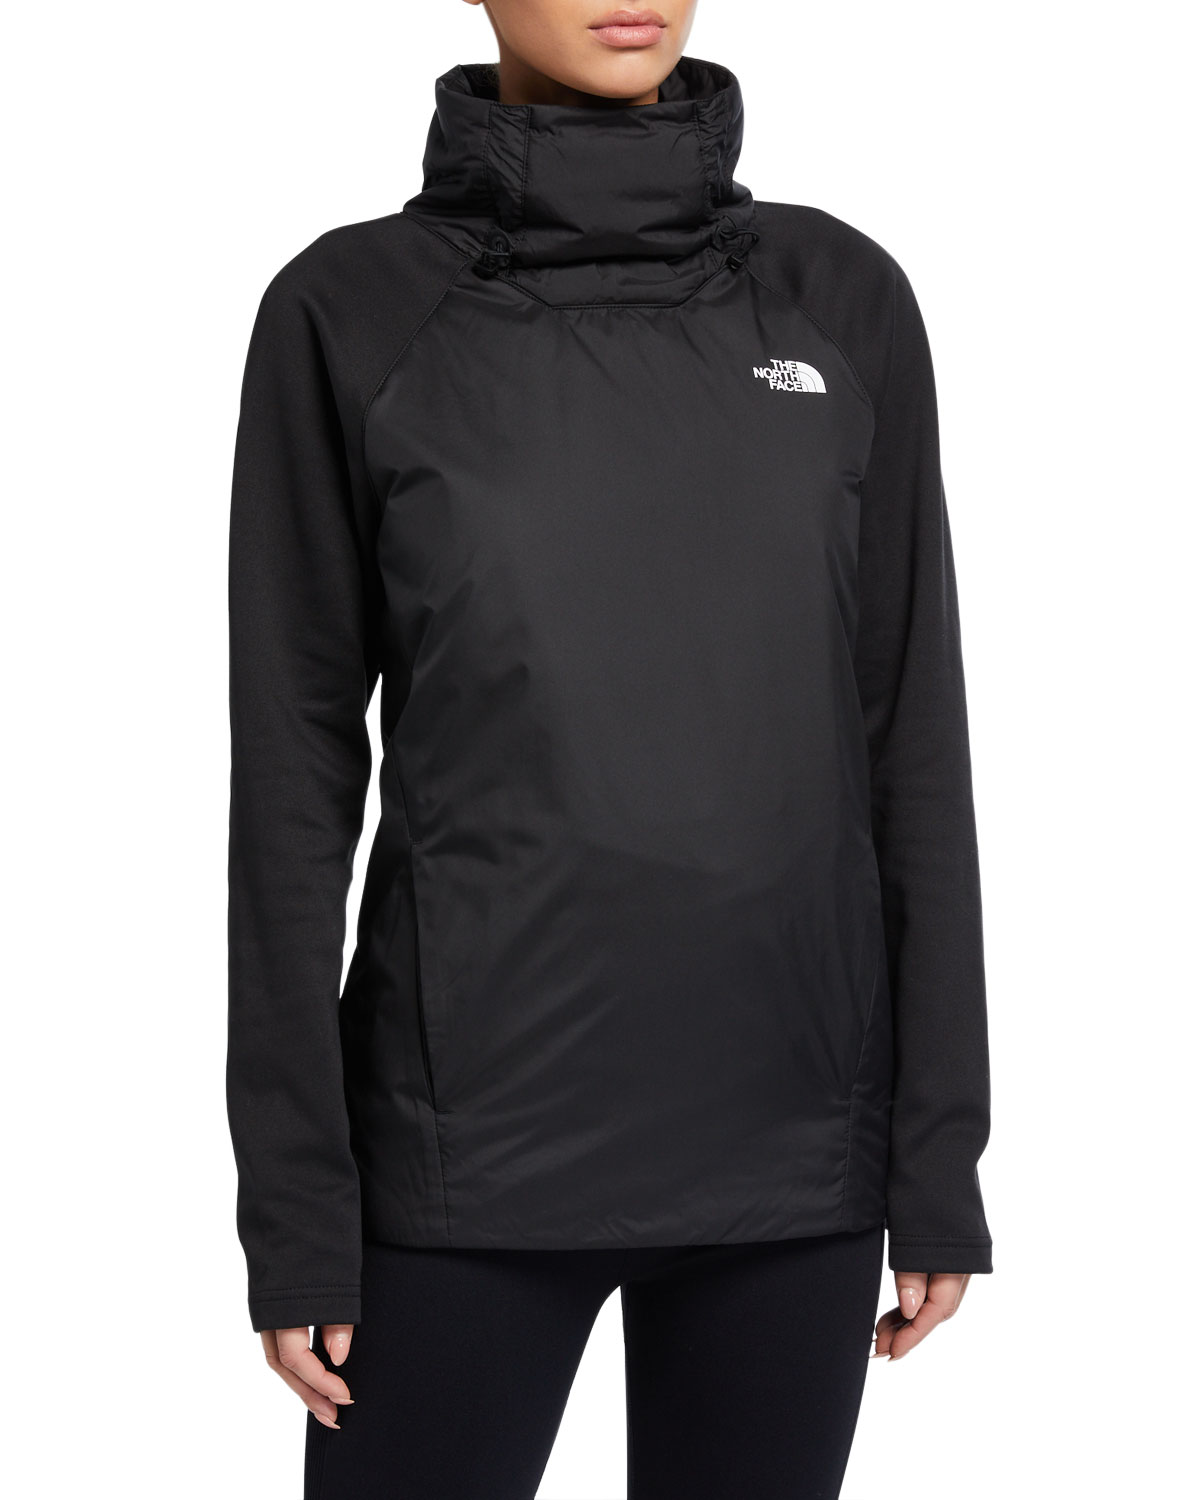 The North Face Canyonlands Insulated Hybrid Pullover Jacket